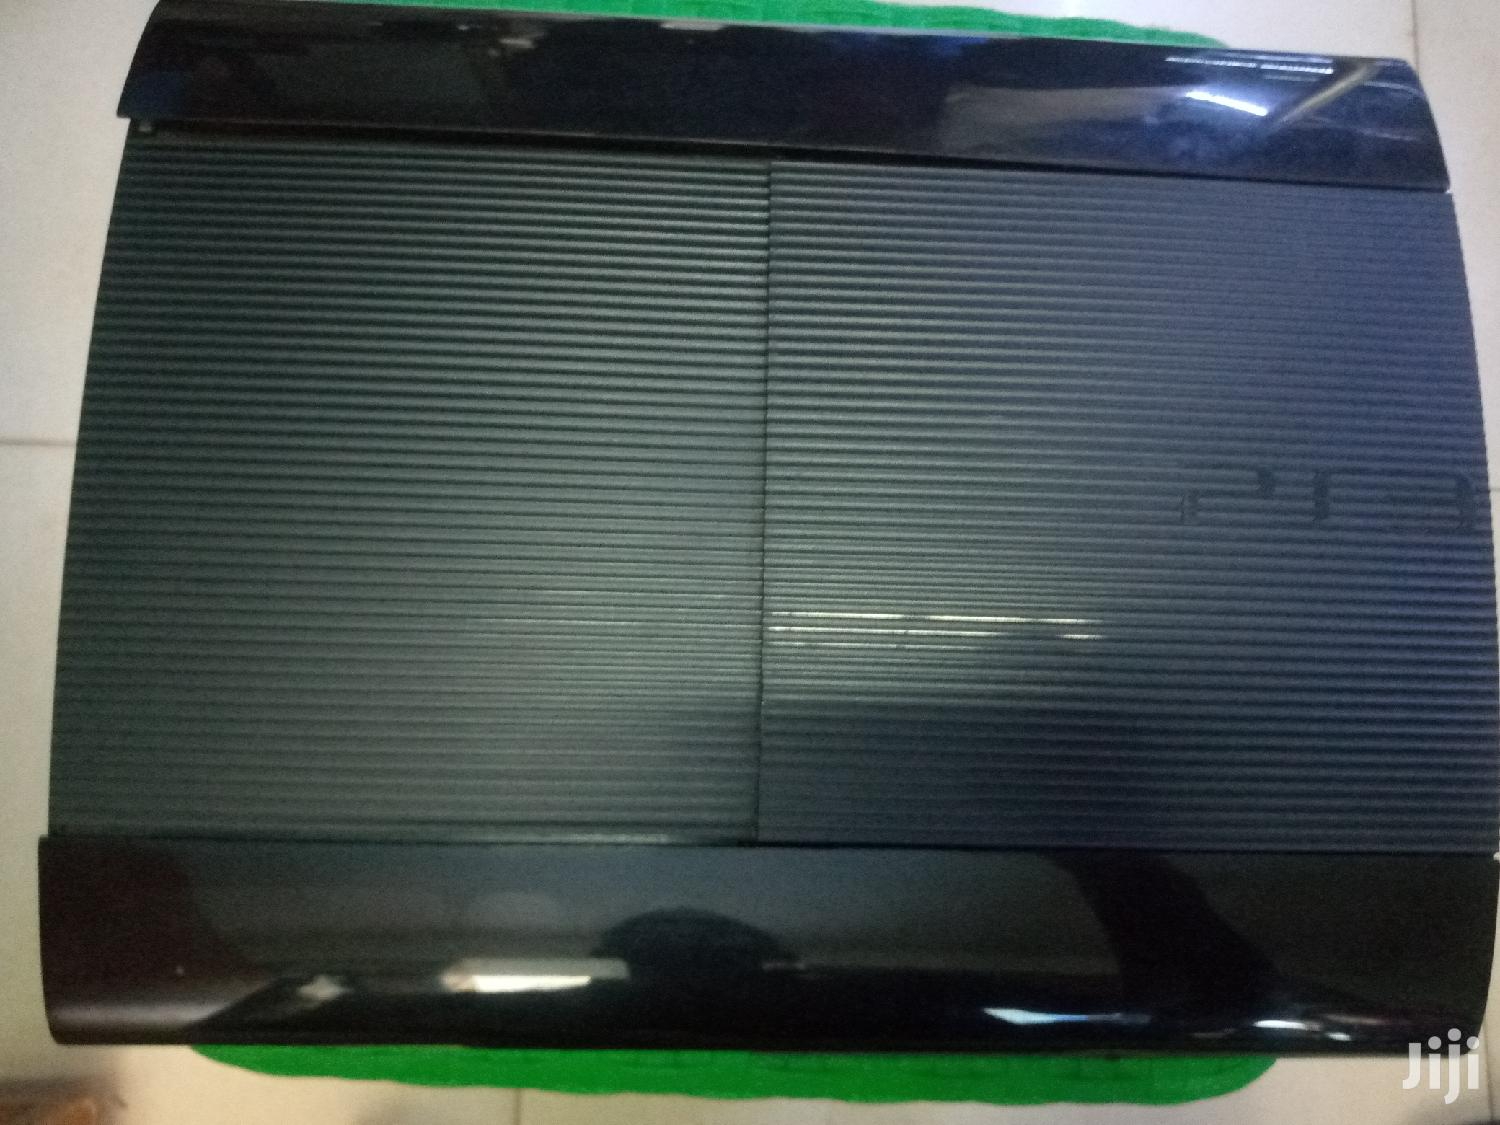 Archive: Playstation 3 Video Game Console